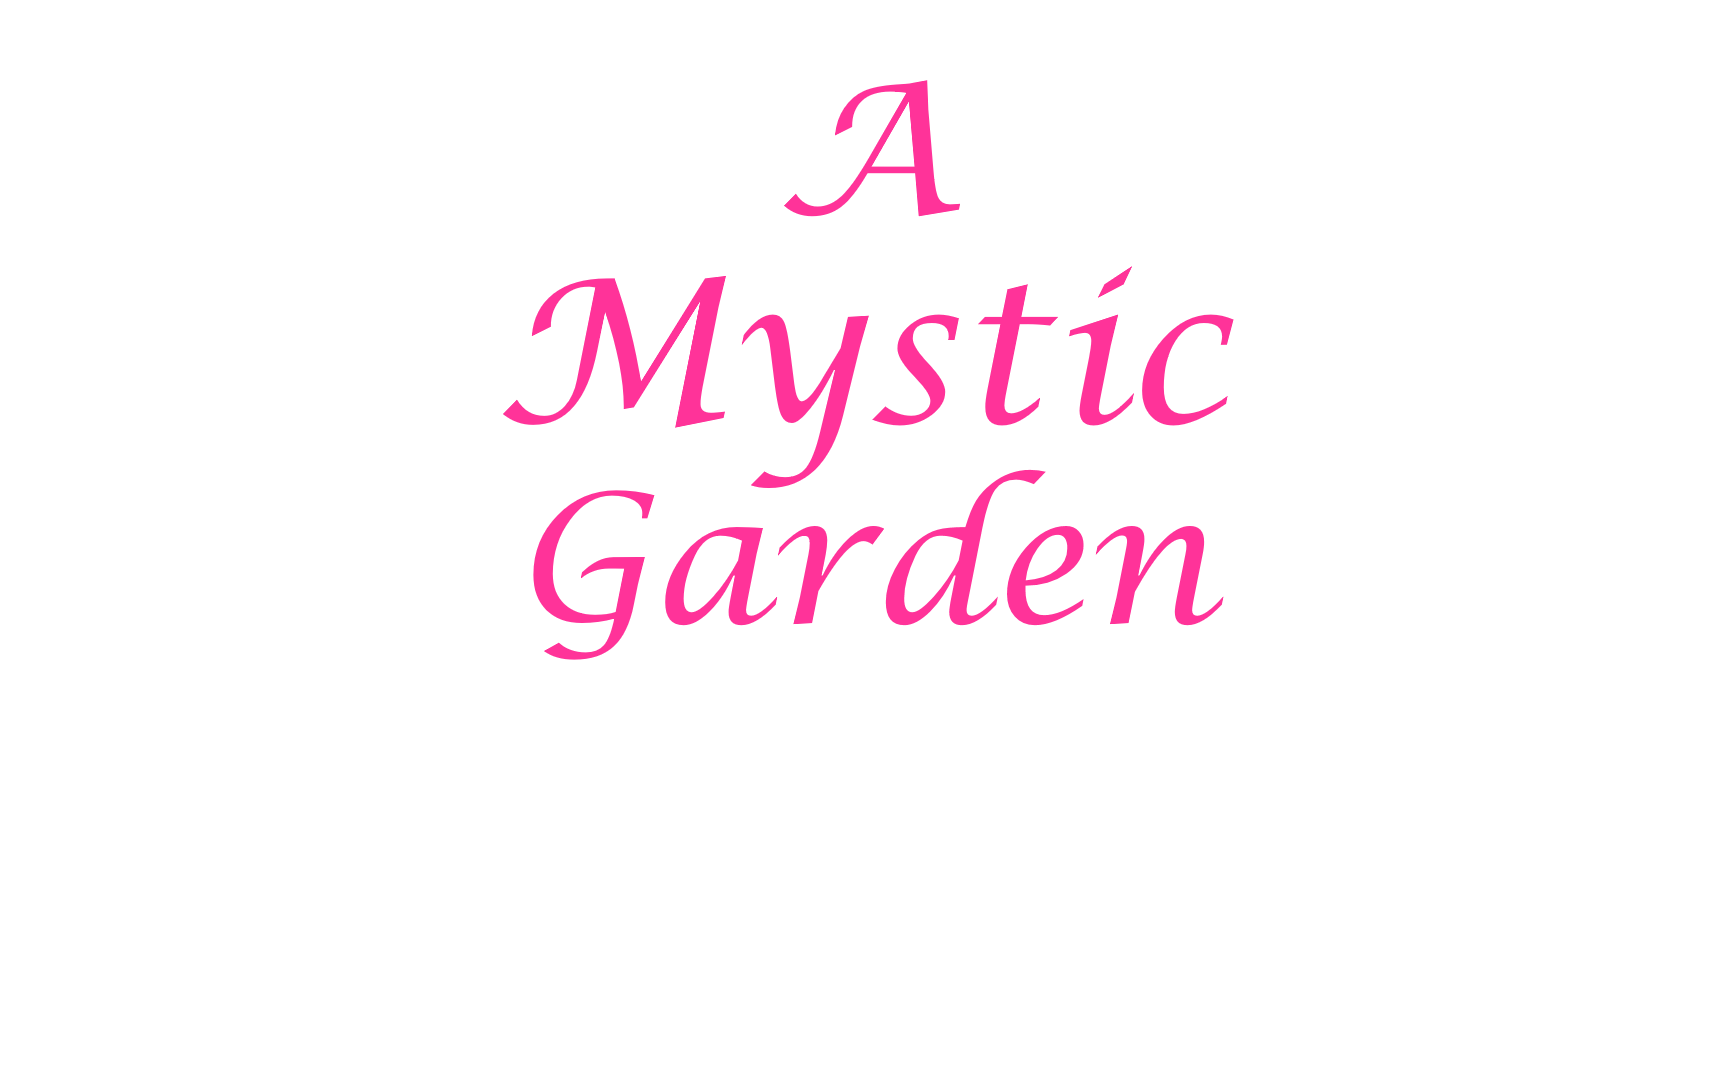 Buy Sympathy And Funeral Flowers From A Mystic Garden